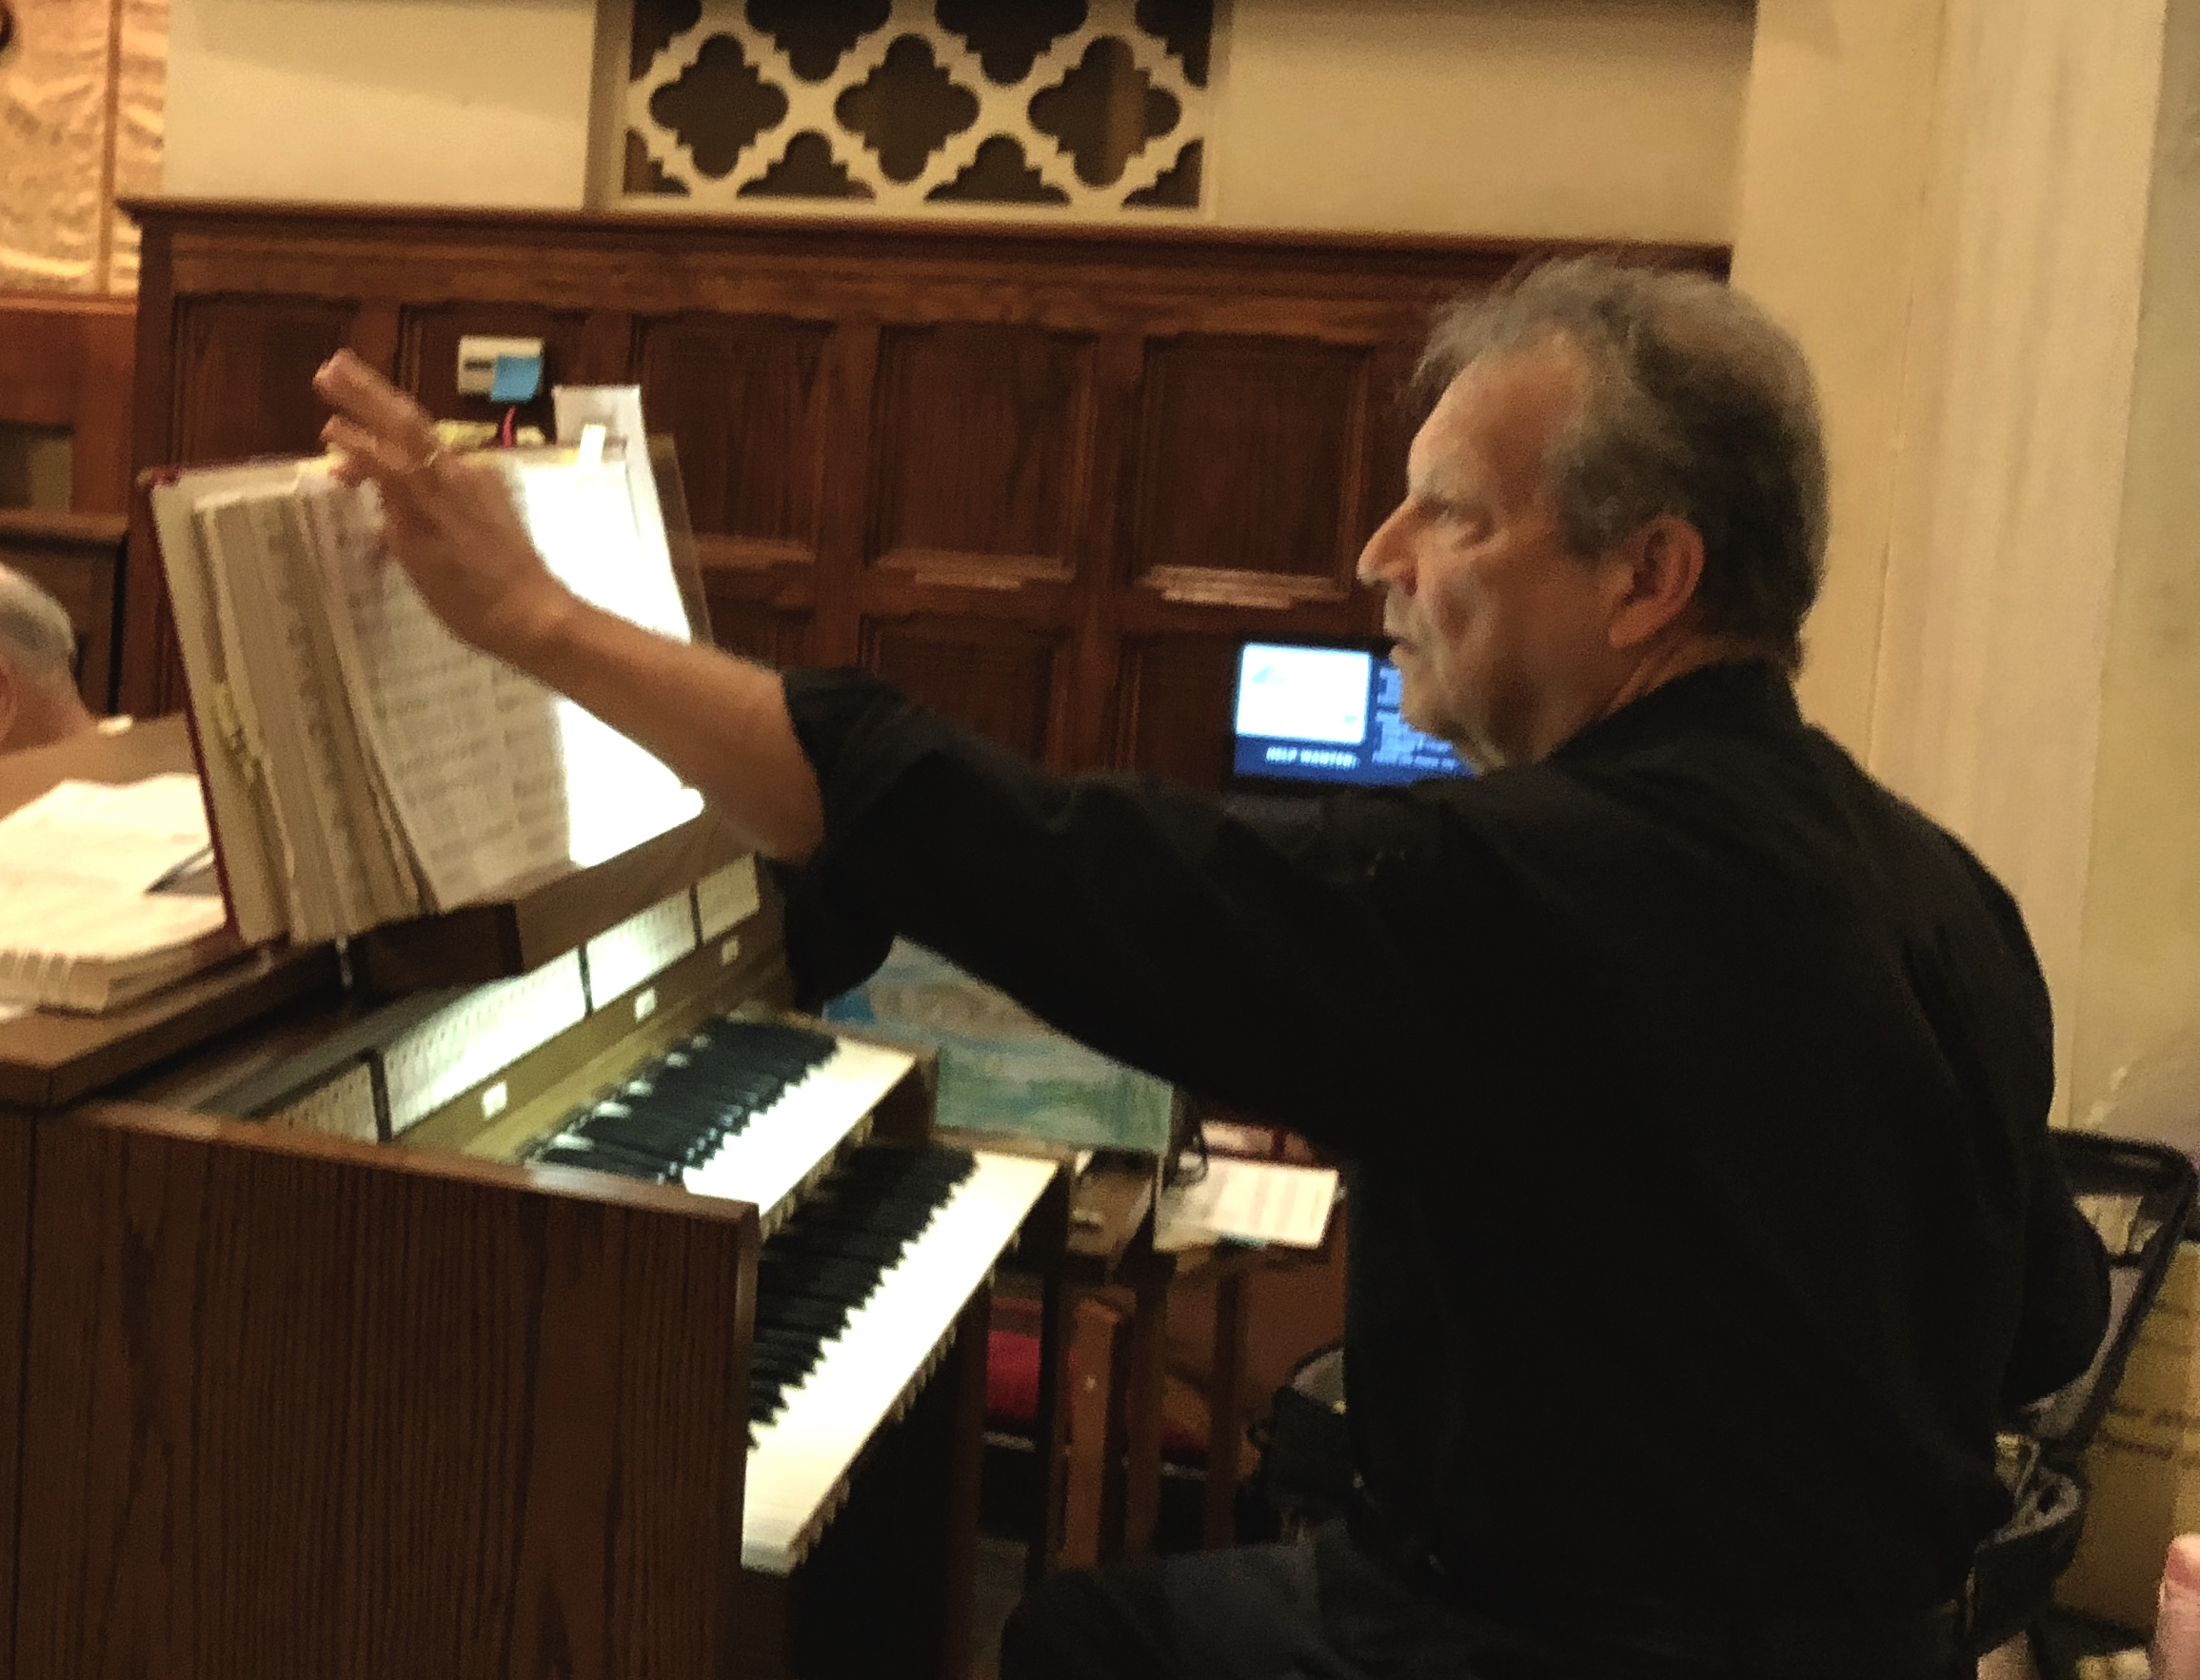 George Akerley prepares his music for a regular Sunday service at St. Mark�s Lutheran Church in Oaklyn, NJ. He began playing in churches at age 15.